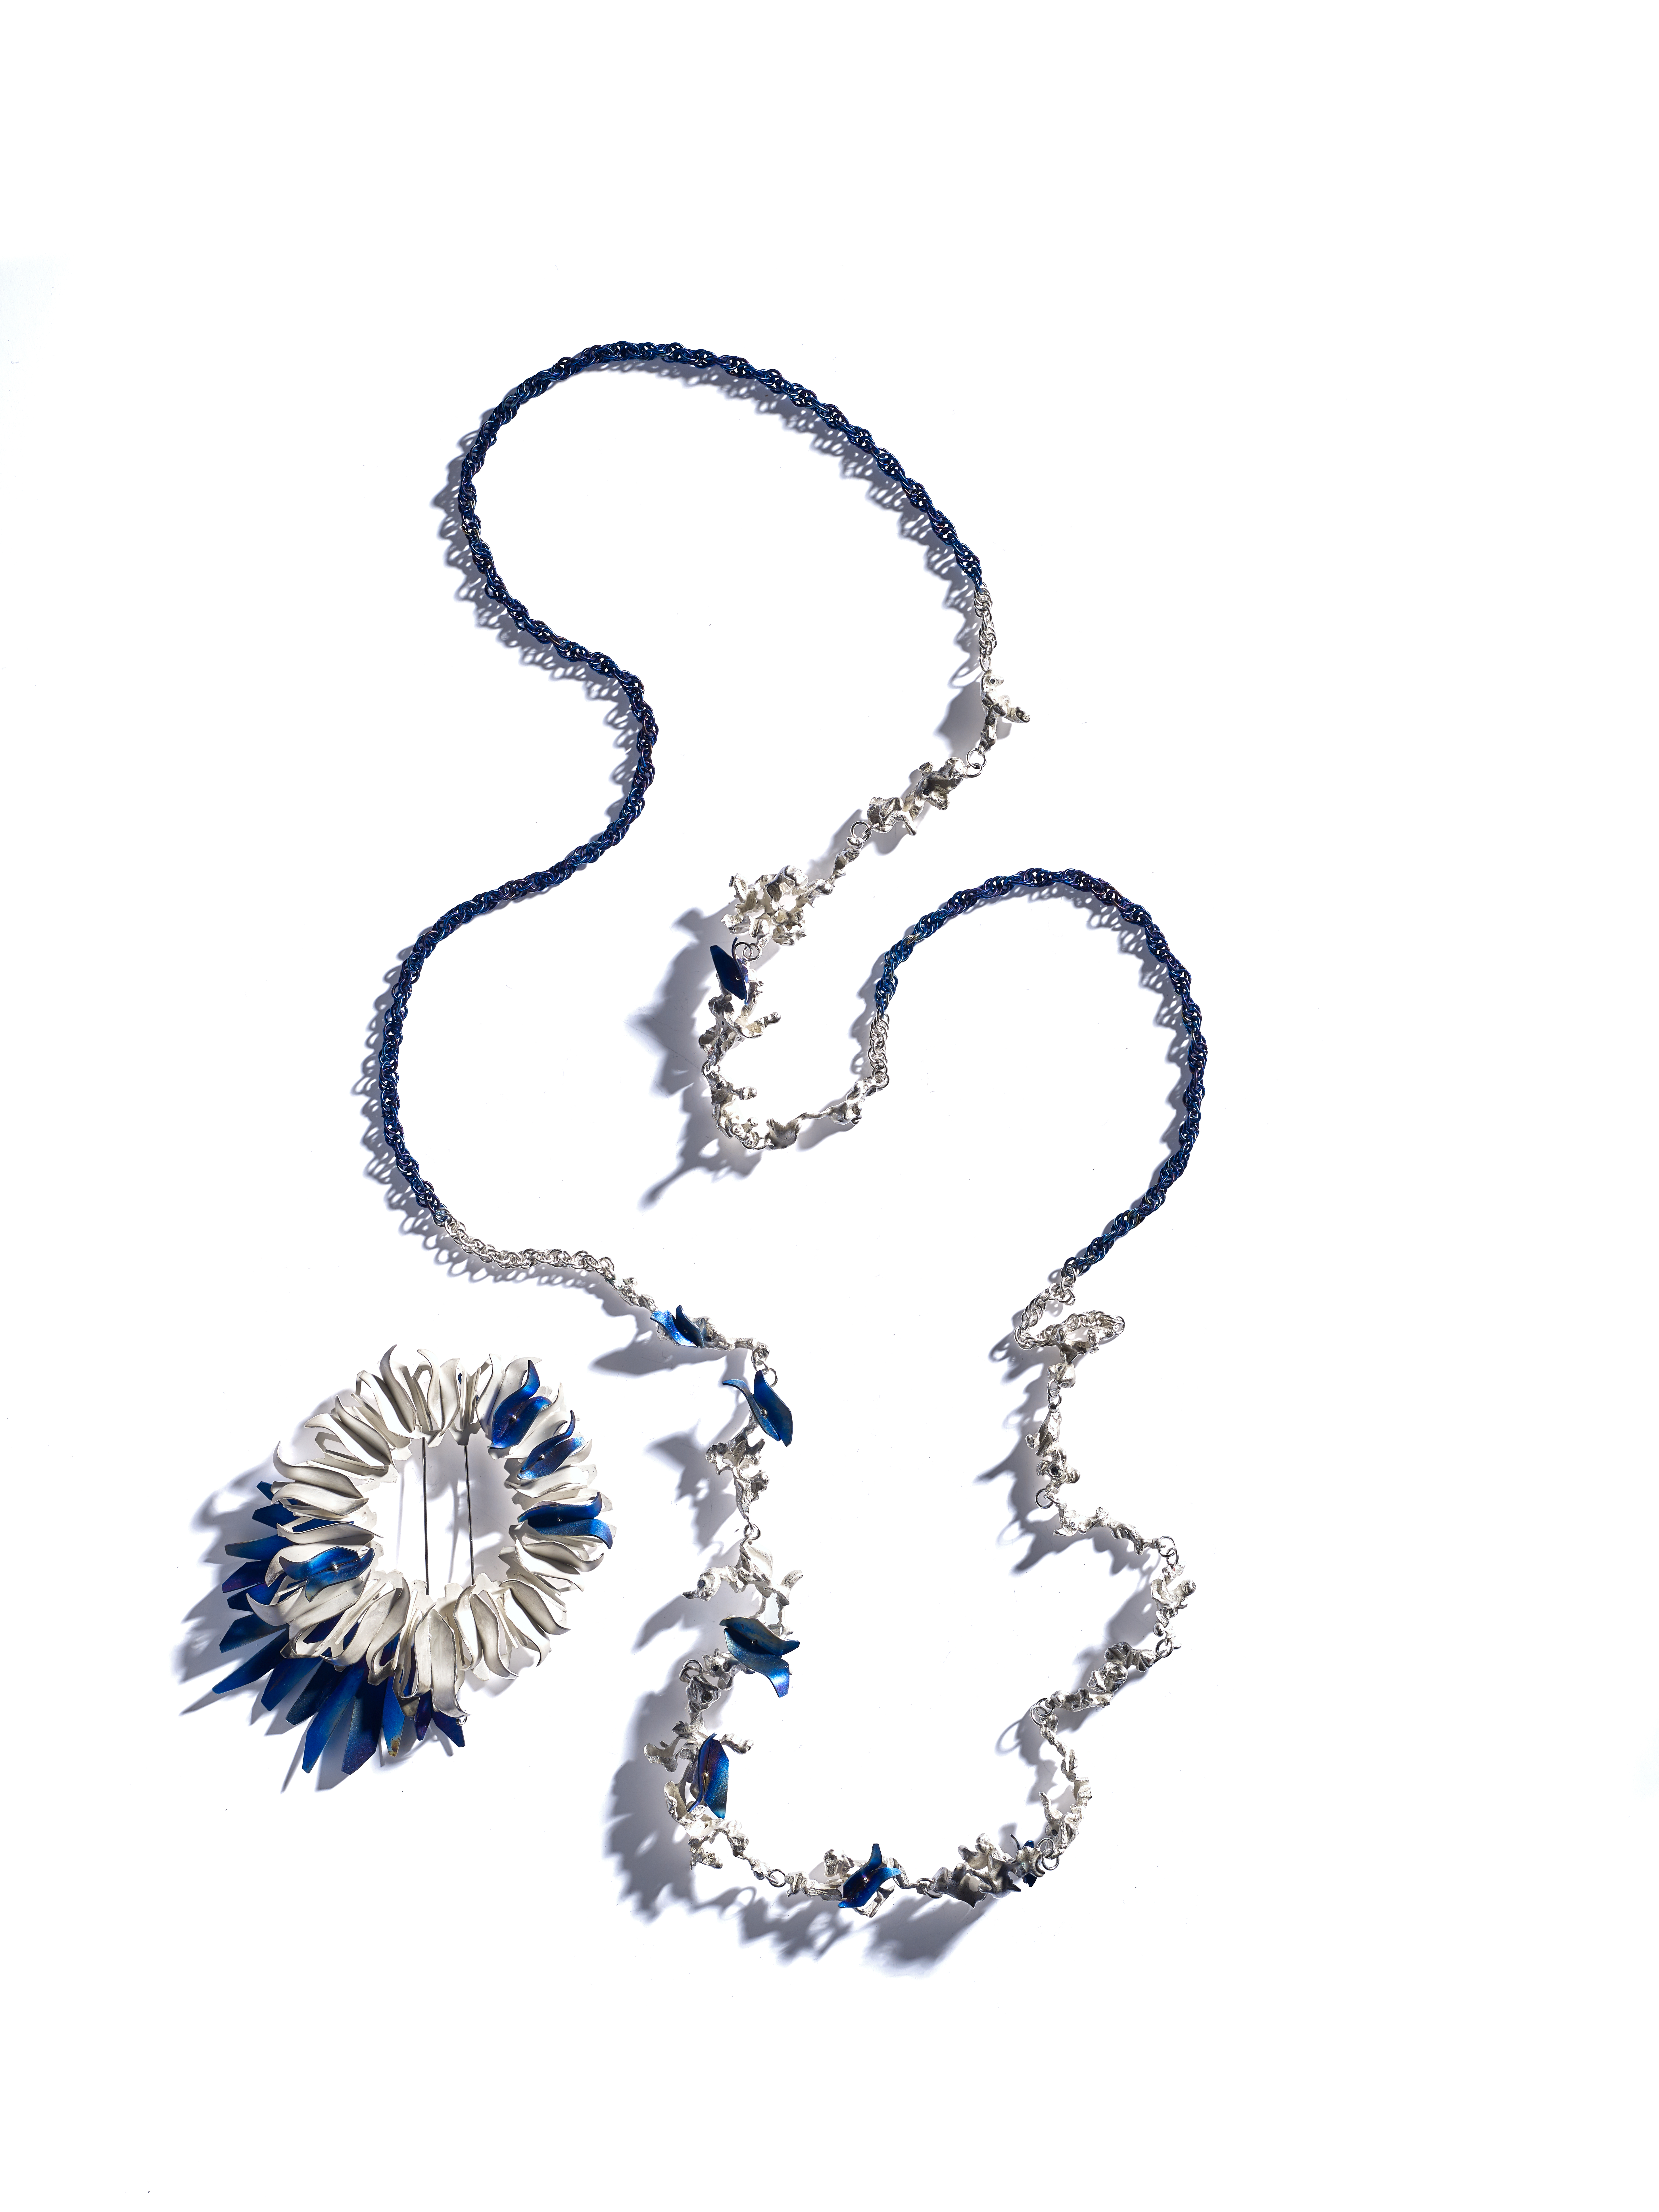 Brooch with connecting neck piece